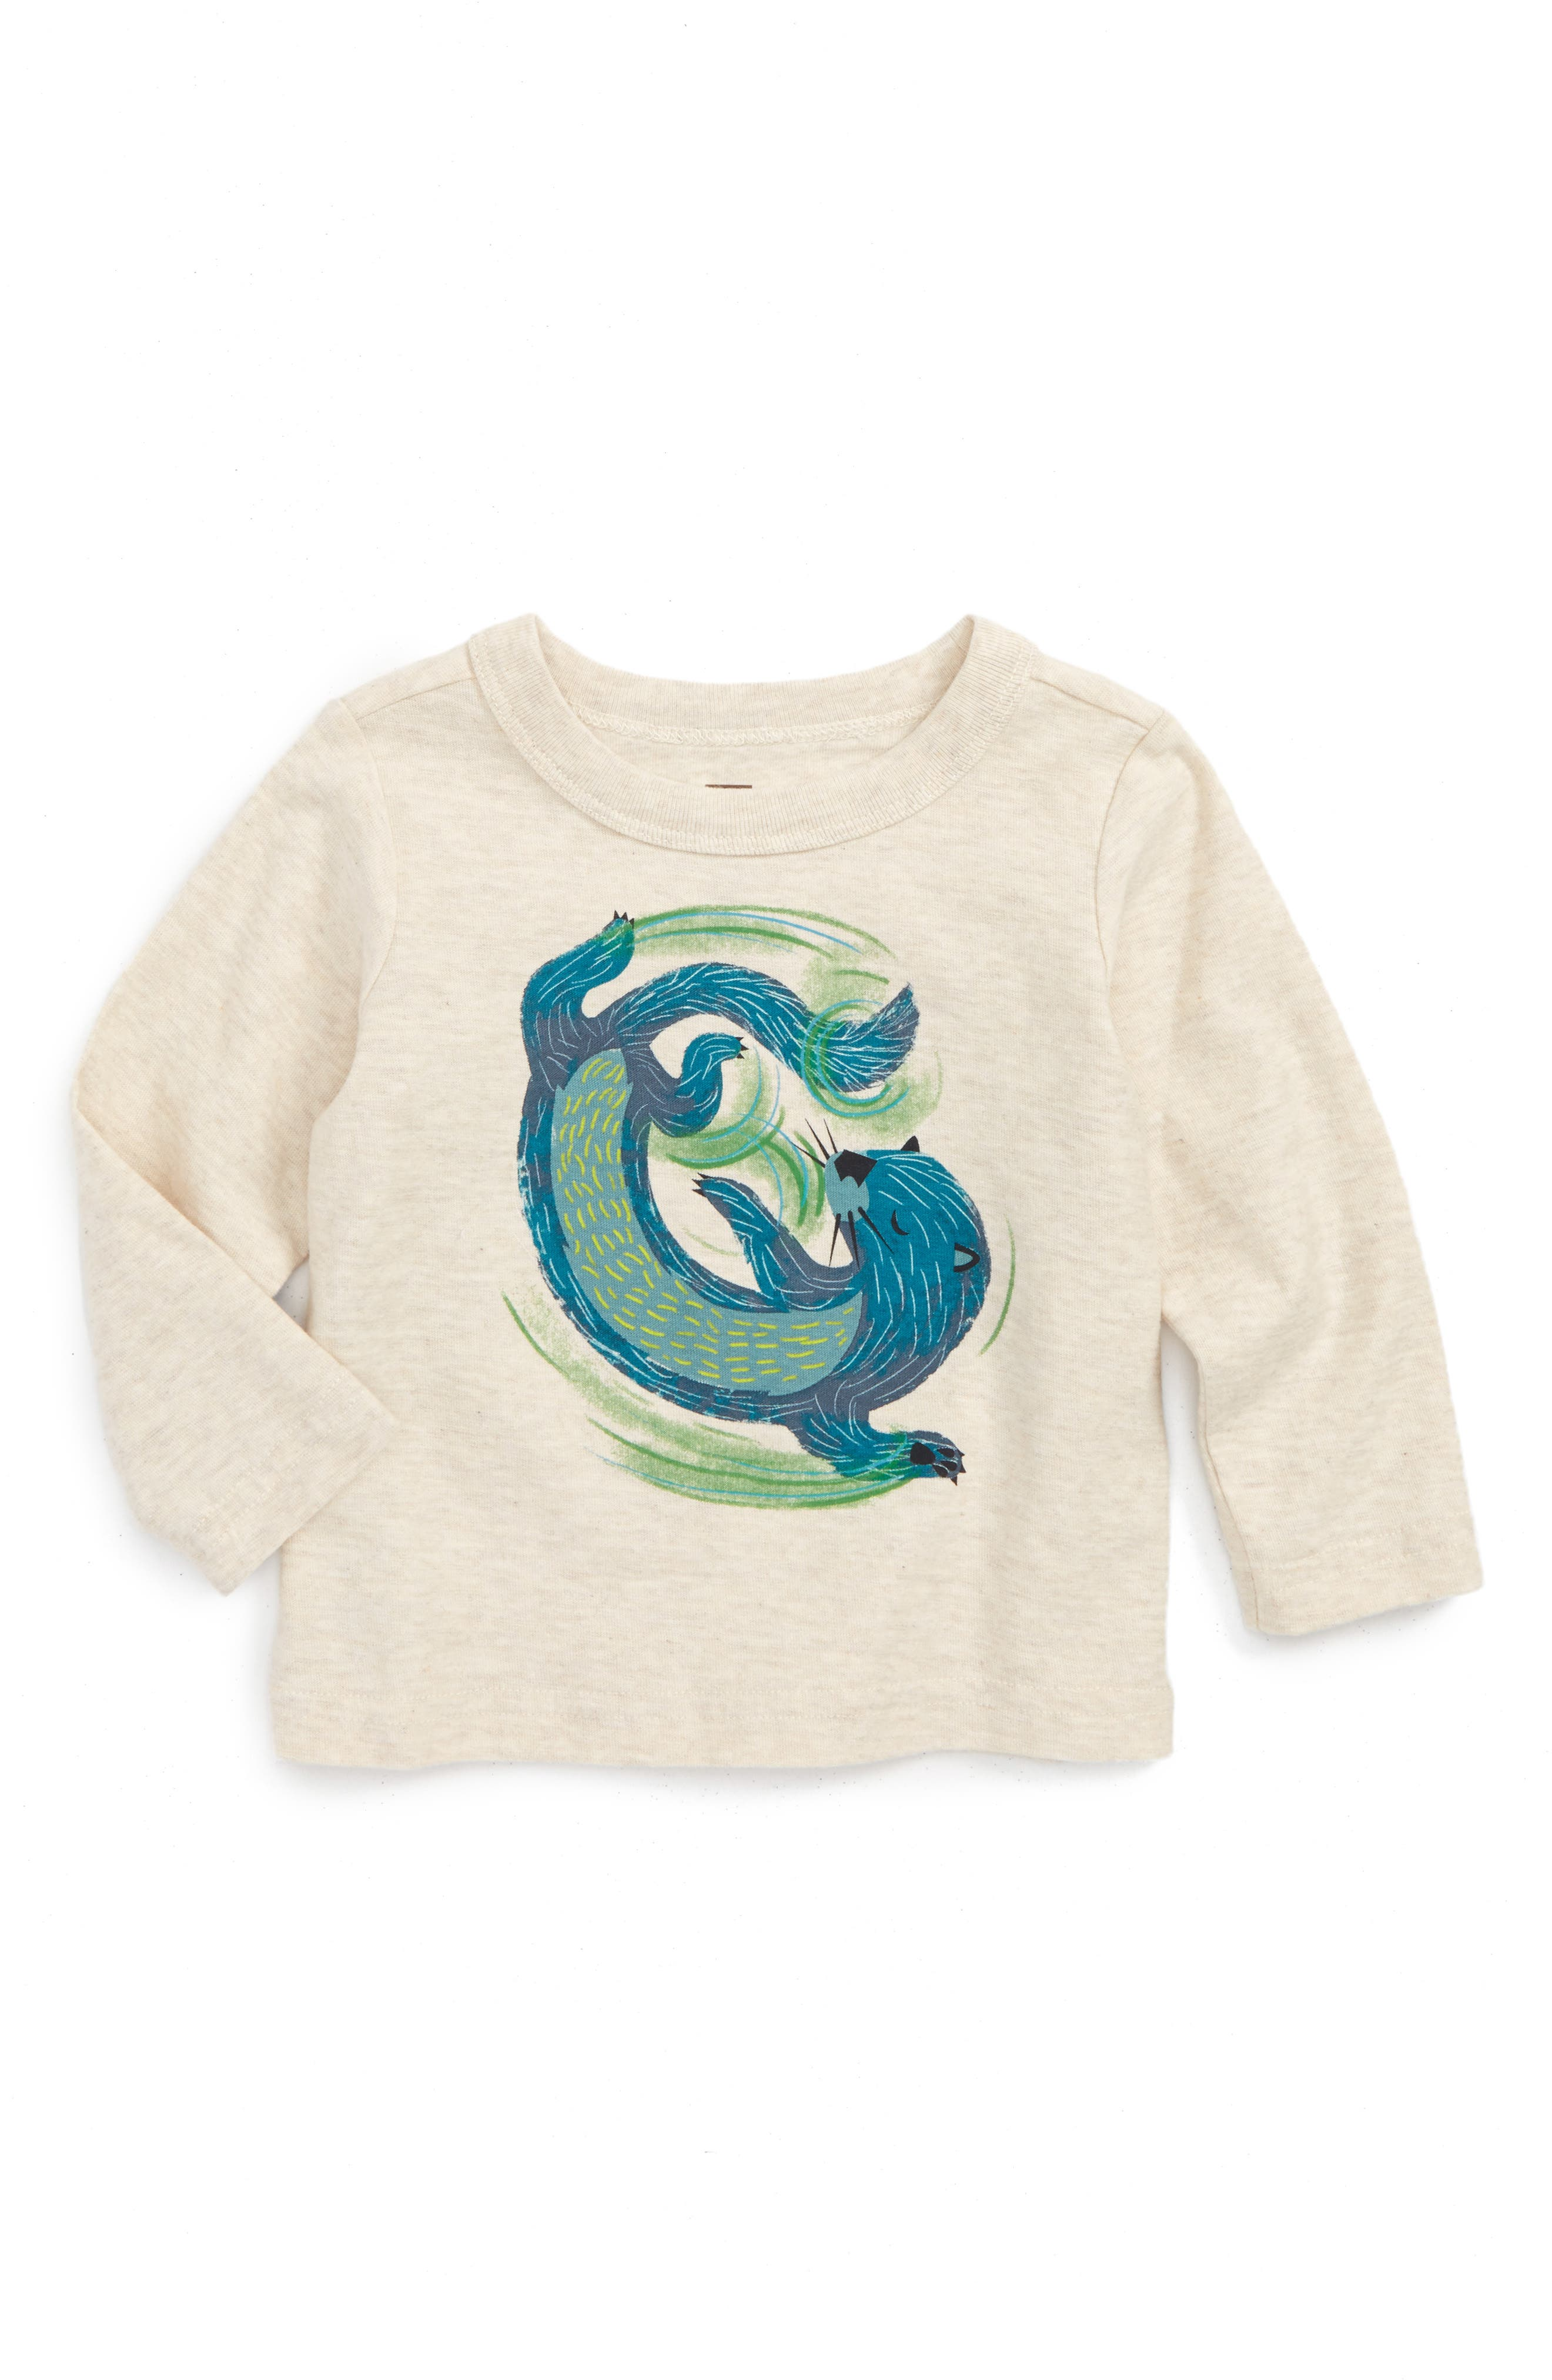 River Otter Graphic T-Shirt,                             Main thumbnail 1, color,                             Oatmeal Heather